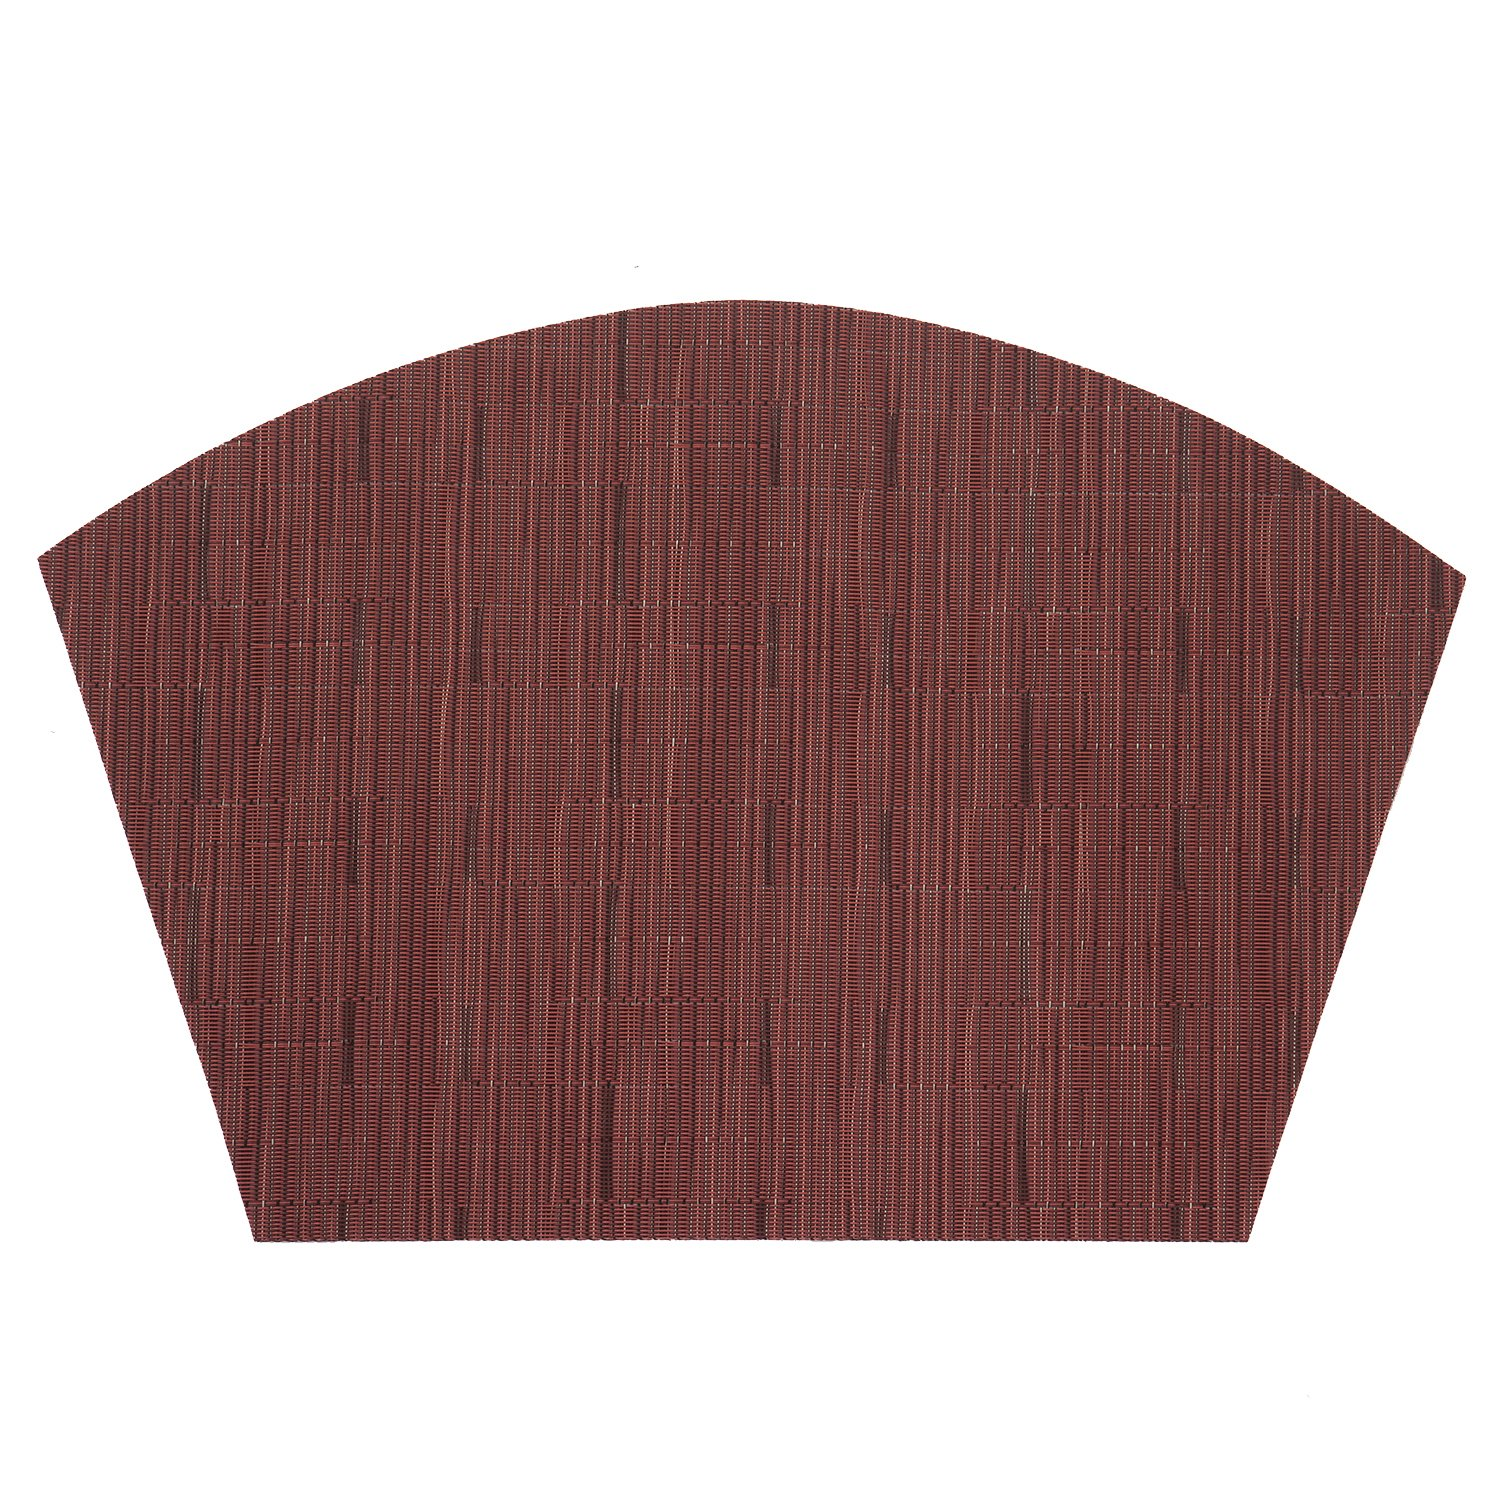 PAUWER Beige Wedge Placemats Set of 6 for Round Dining Table PVC Washable Round Table Placemats